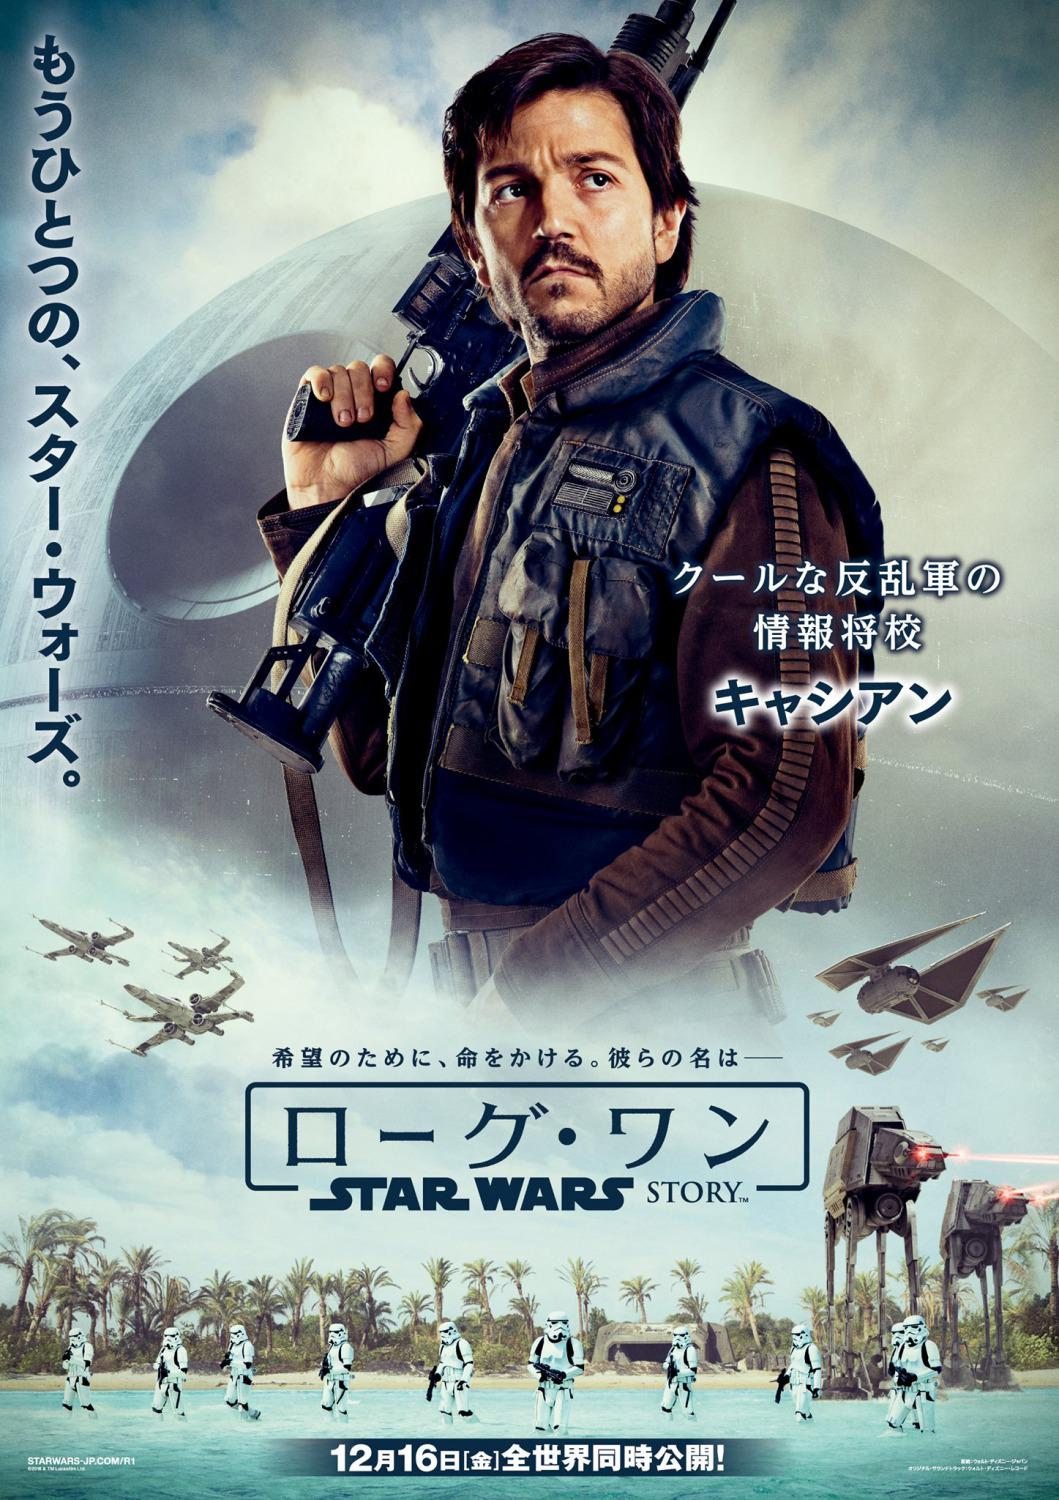 Star Wars - Rogue One a Star Wars story - Diego Luna - Cassian Andor